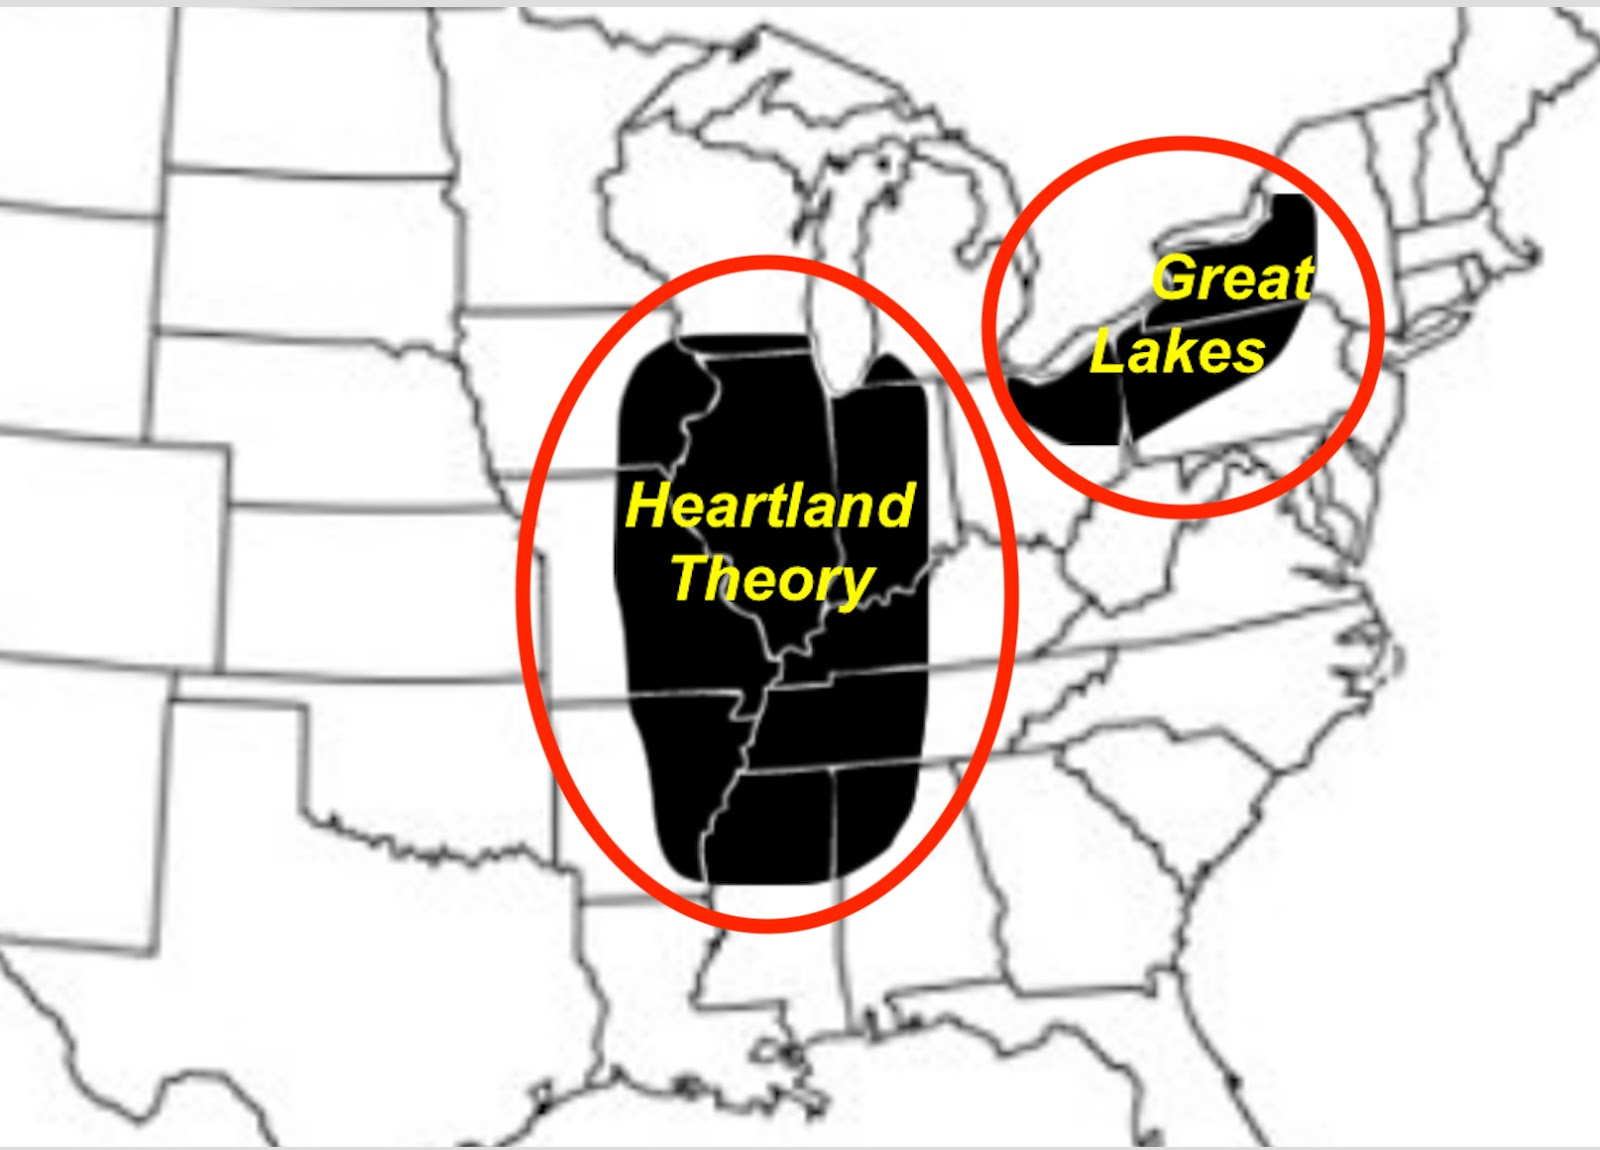 a rough outline of where the great lakes and heartland models claim for the land of promise locations in the u s